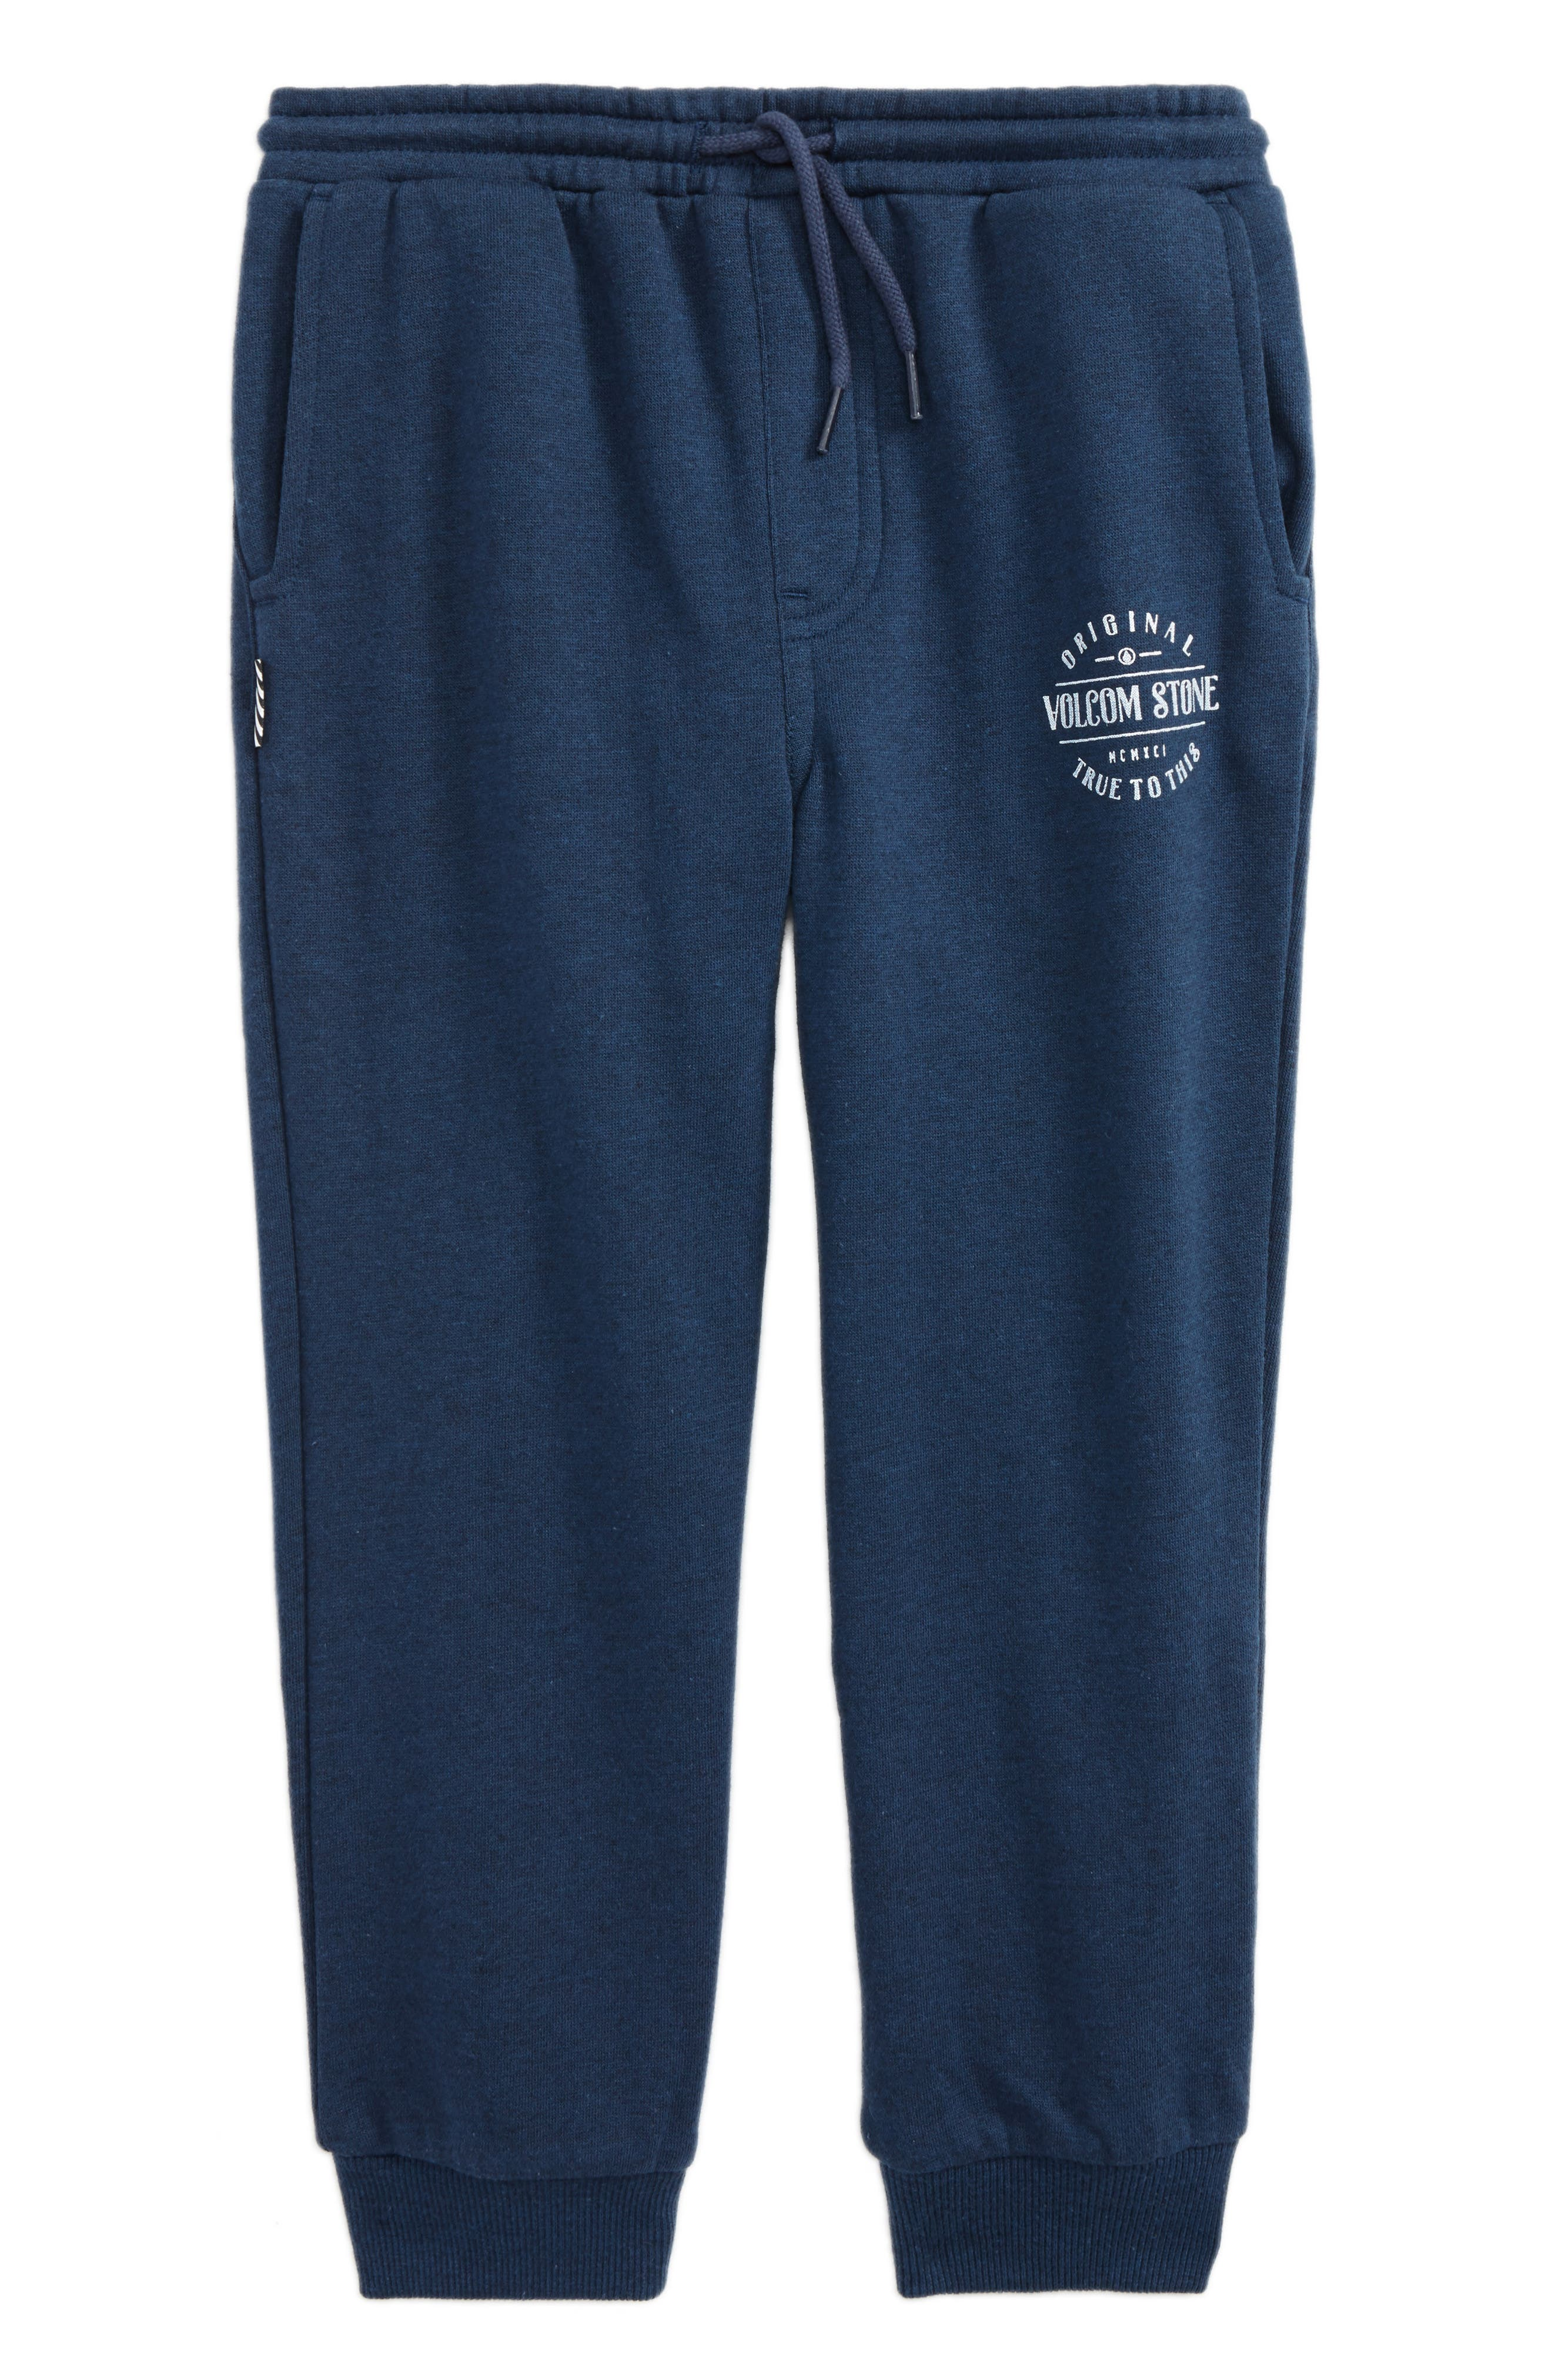 Alternate Image 1 Selected - Volcom Graphic Fleece Sweatpants (Toddler Boys & Little Boys)